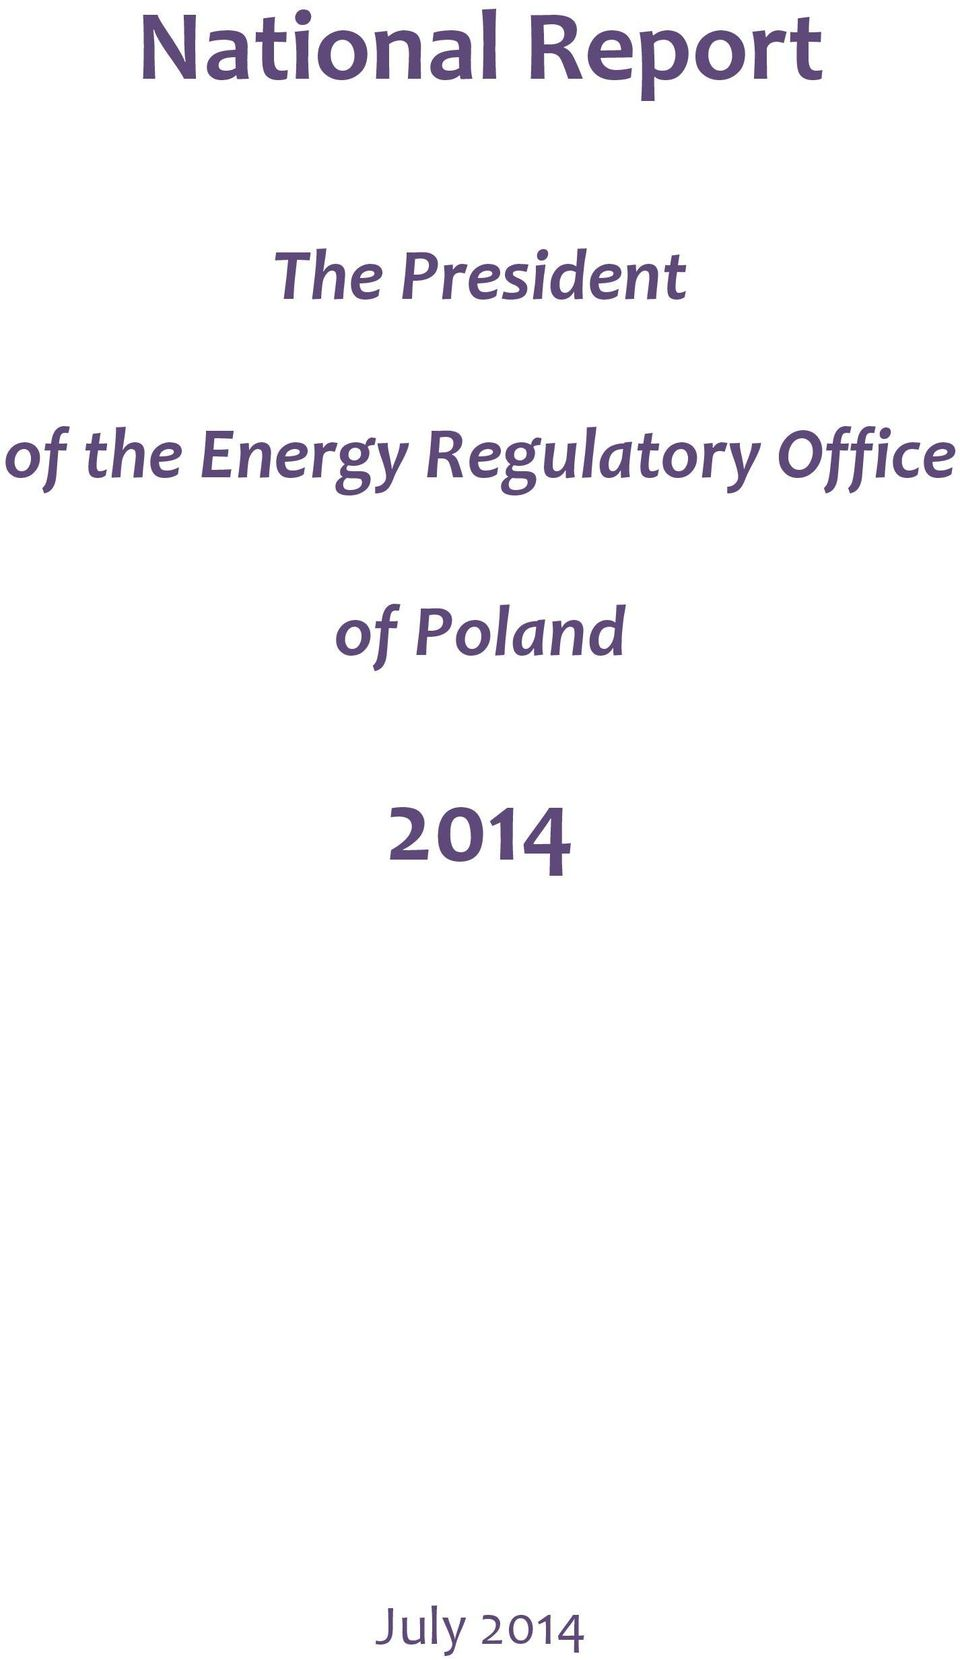 Energy Regulatory